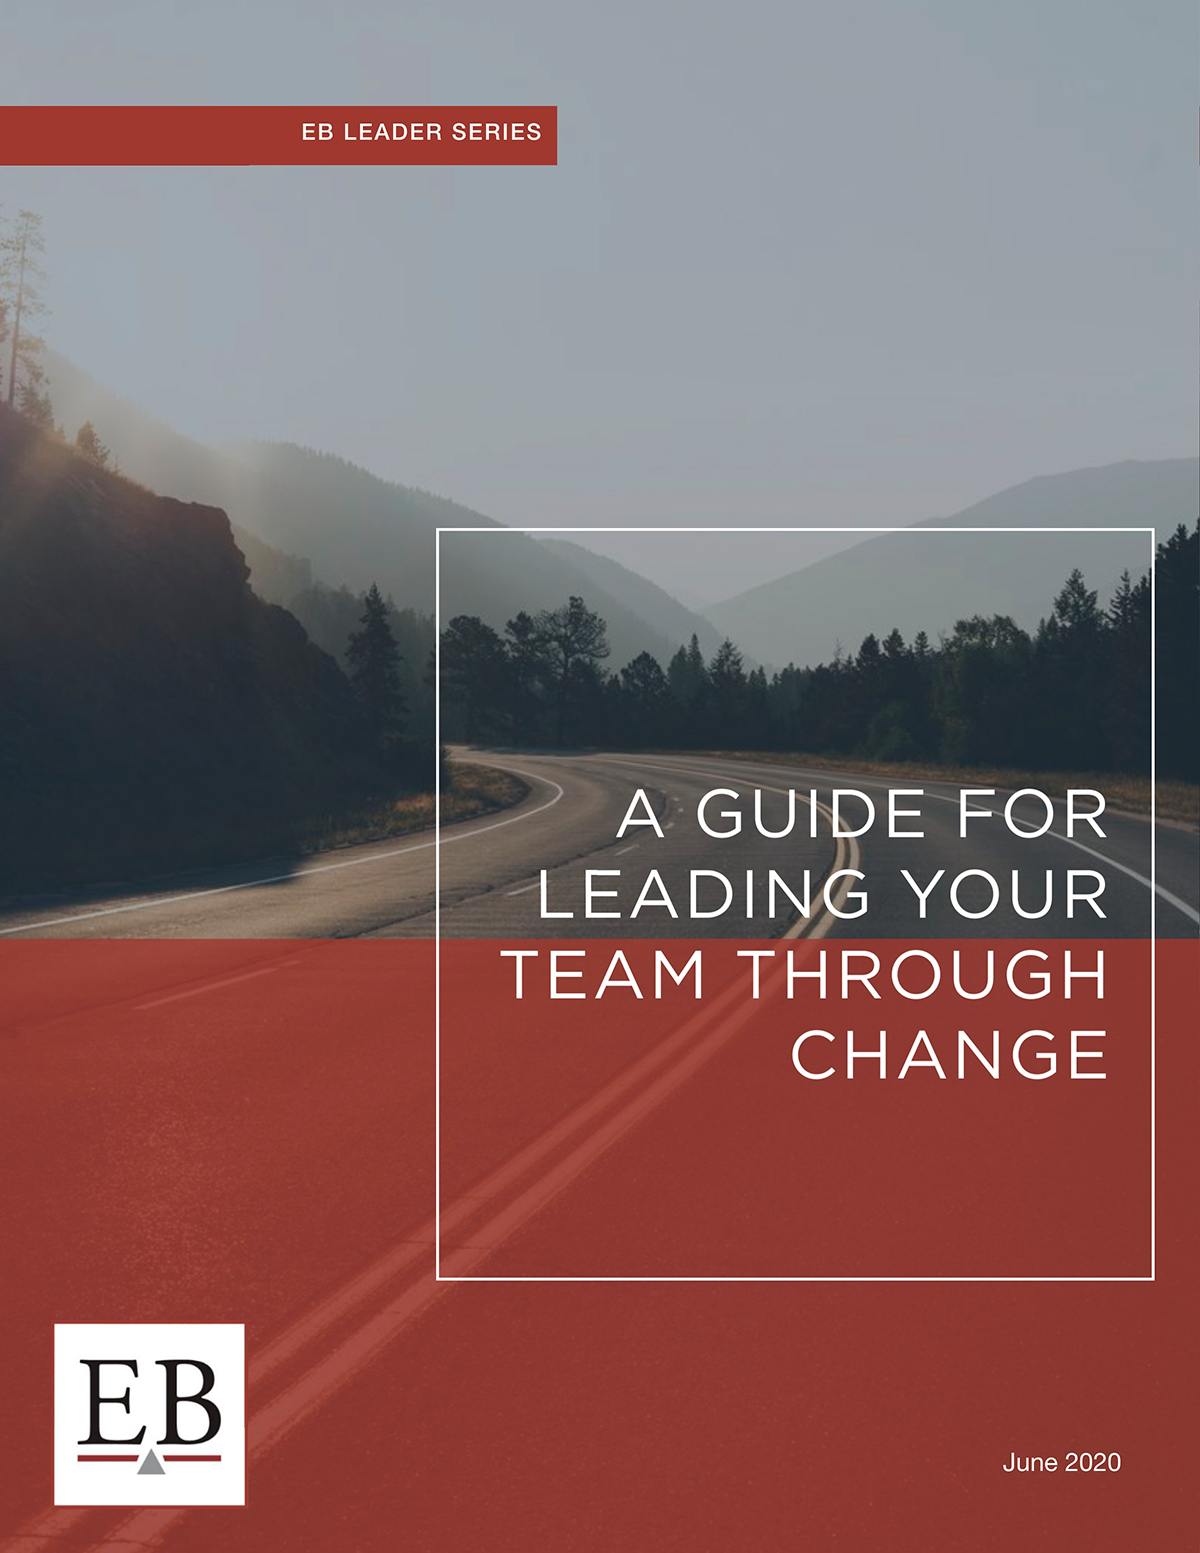 The cover of a training document on leading a team through change.